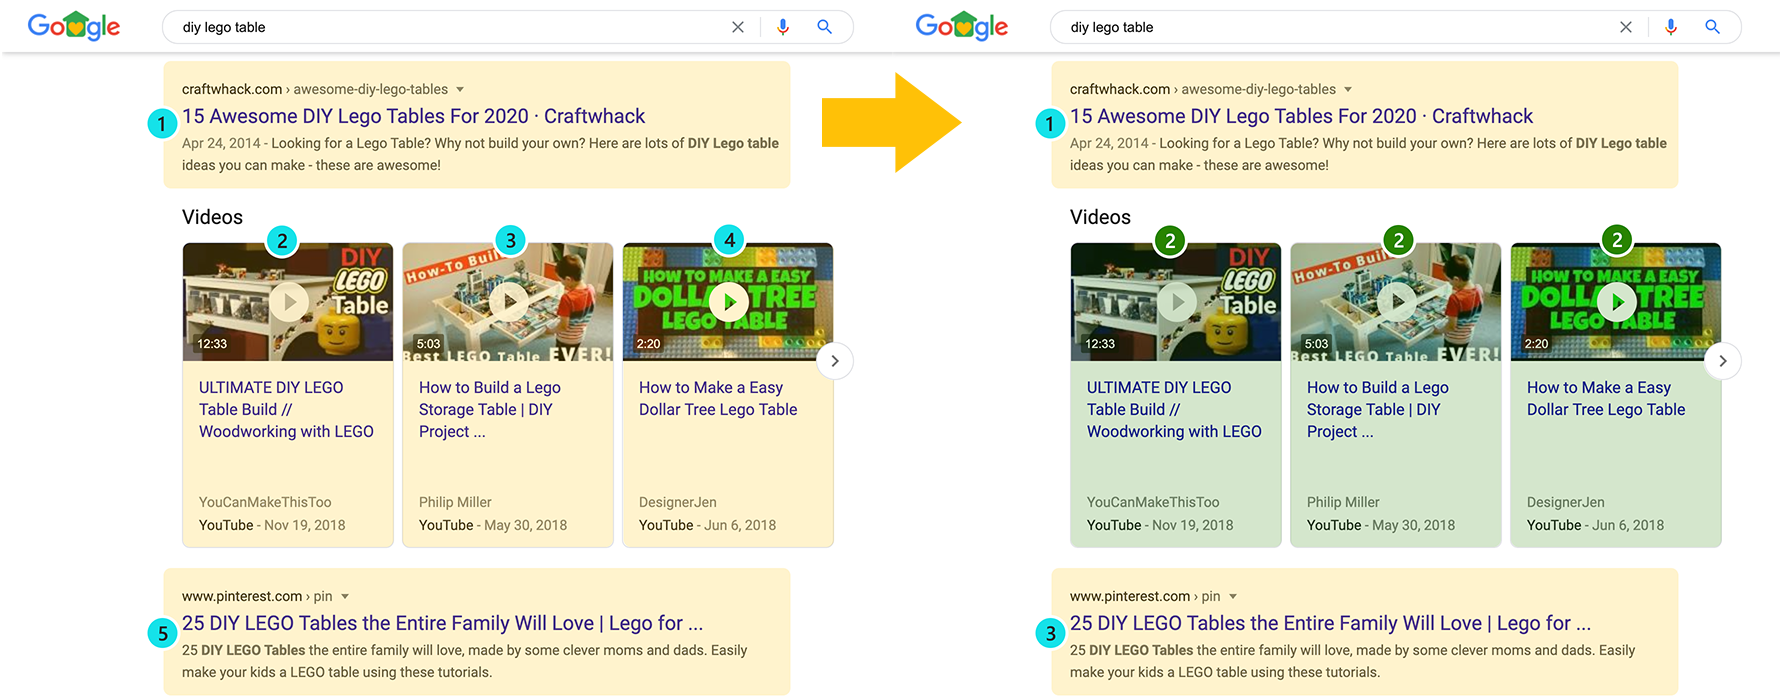 Side by side SERP screenshots for lego search highlighting the change in how Videos positions are tracked.